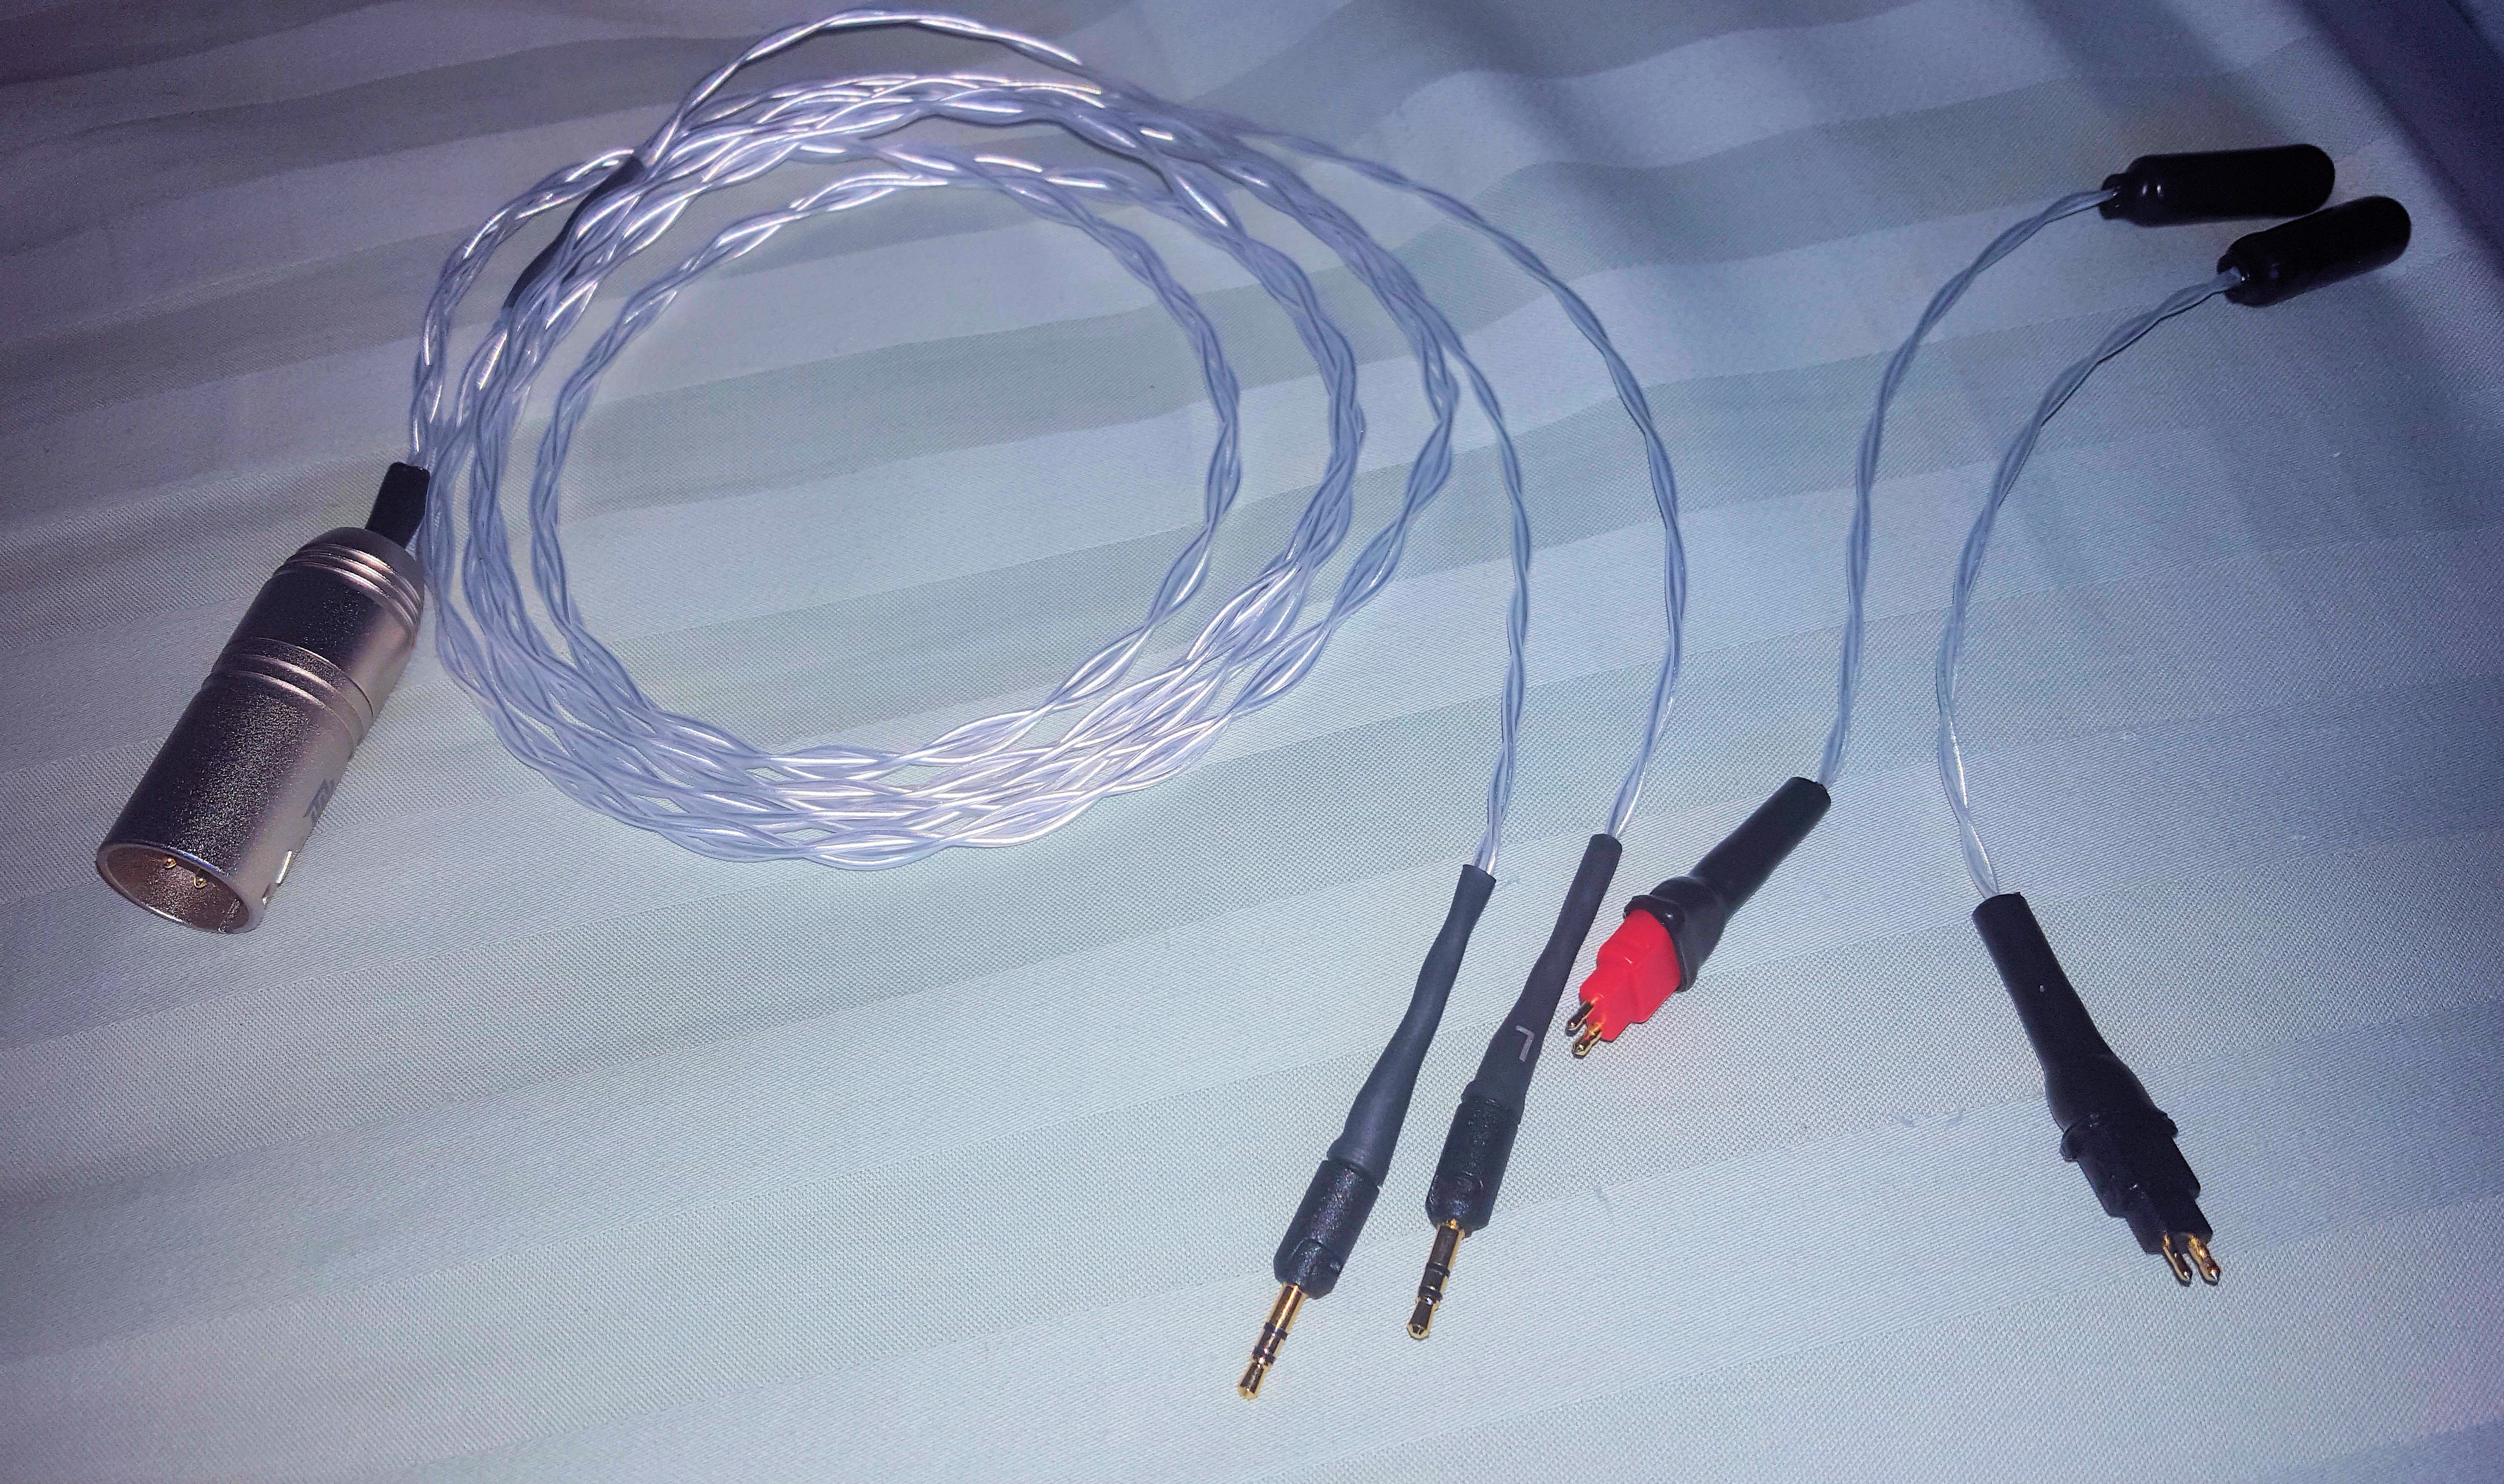 OCC silver plated copper wire for HD600, HD650 or ATH R70x (balanced ...